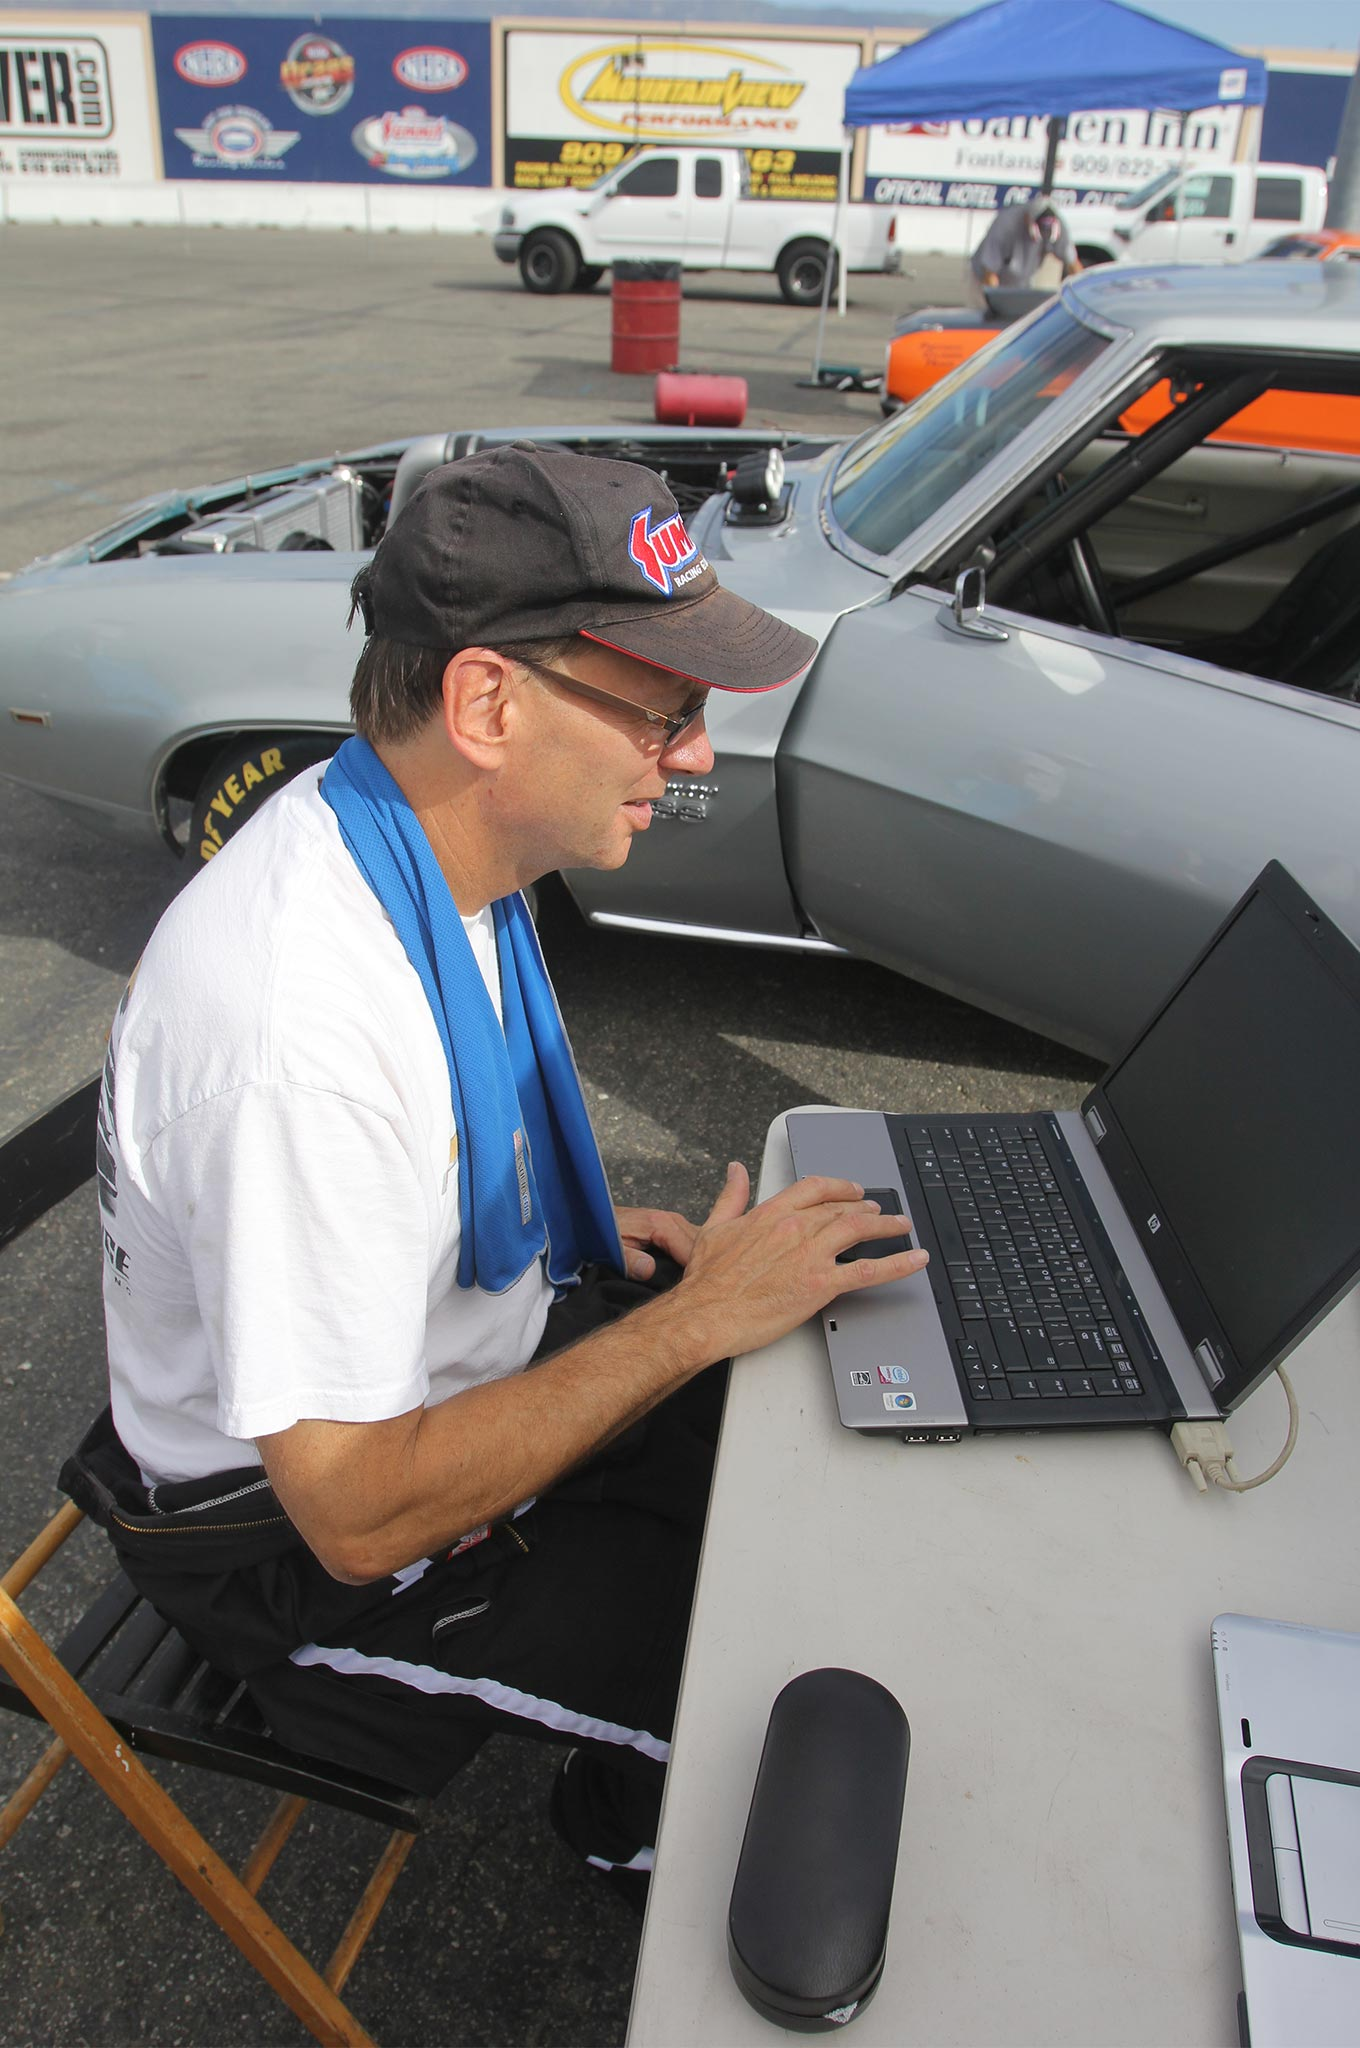 The CAS system is extremely engine-friendly with near zero between-round maintenance, other than changing bottles. Here, Staggemeier is downloading the previous run from the data logger. This particular day at Fontana was 90-plus degrees, but the engine was running on below-freezing inlet air because it carries its own atmosphere. Think about that on a hot, humid August race day in Houston!